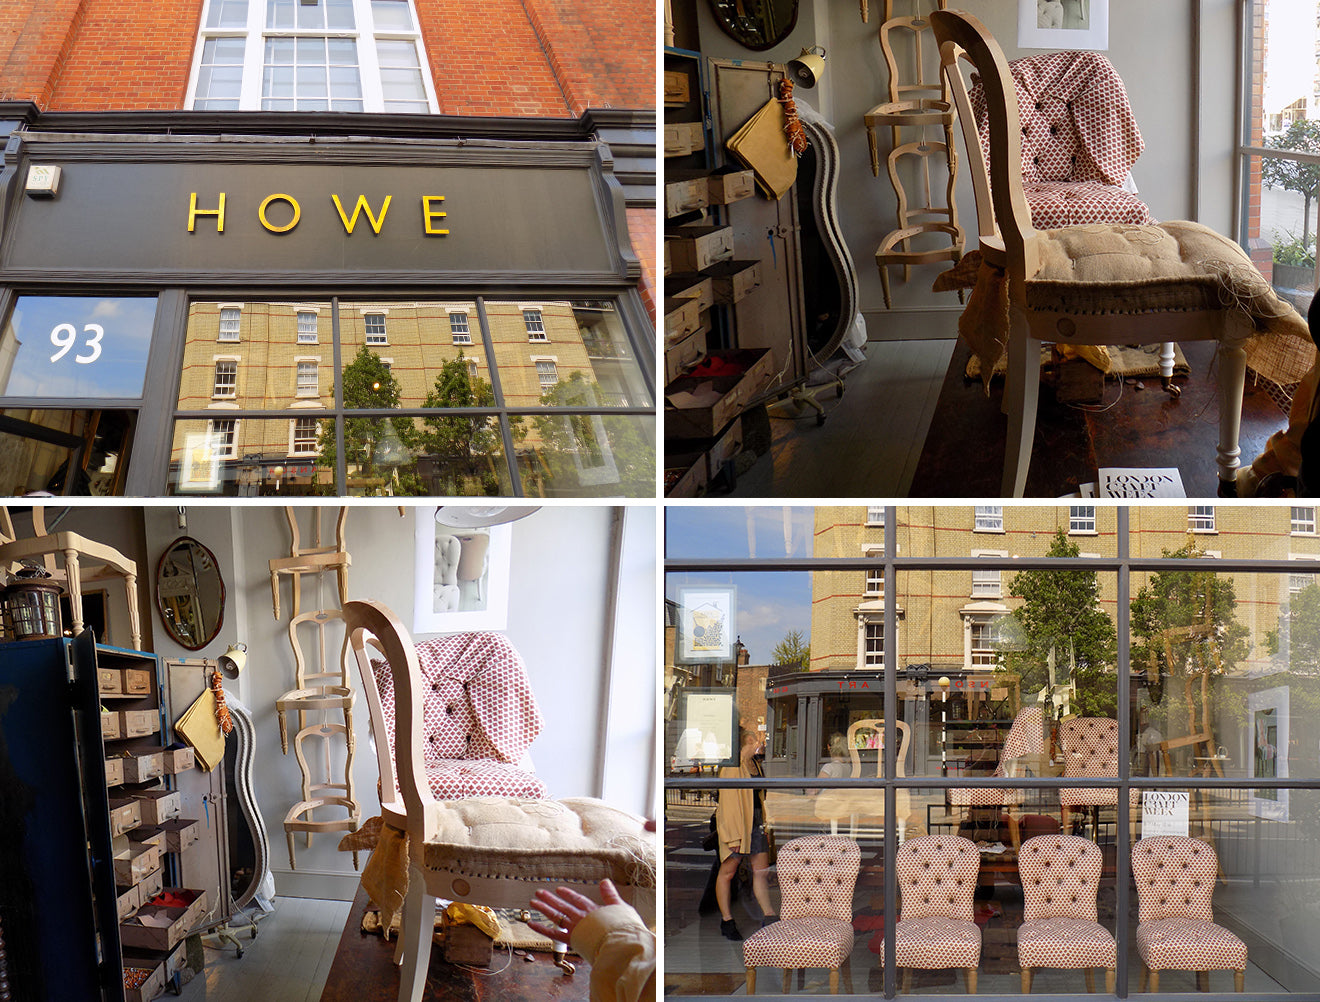 Howe antiques and upholstery Pimlico road for London Craft Week